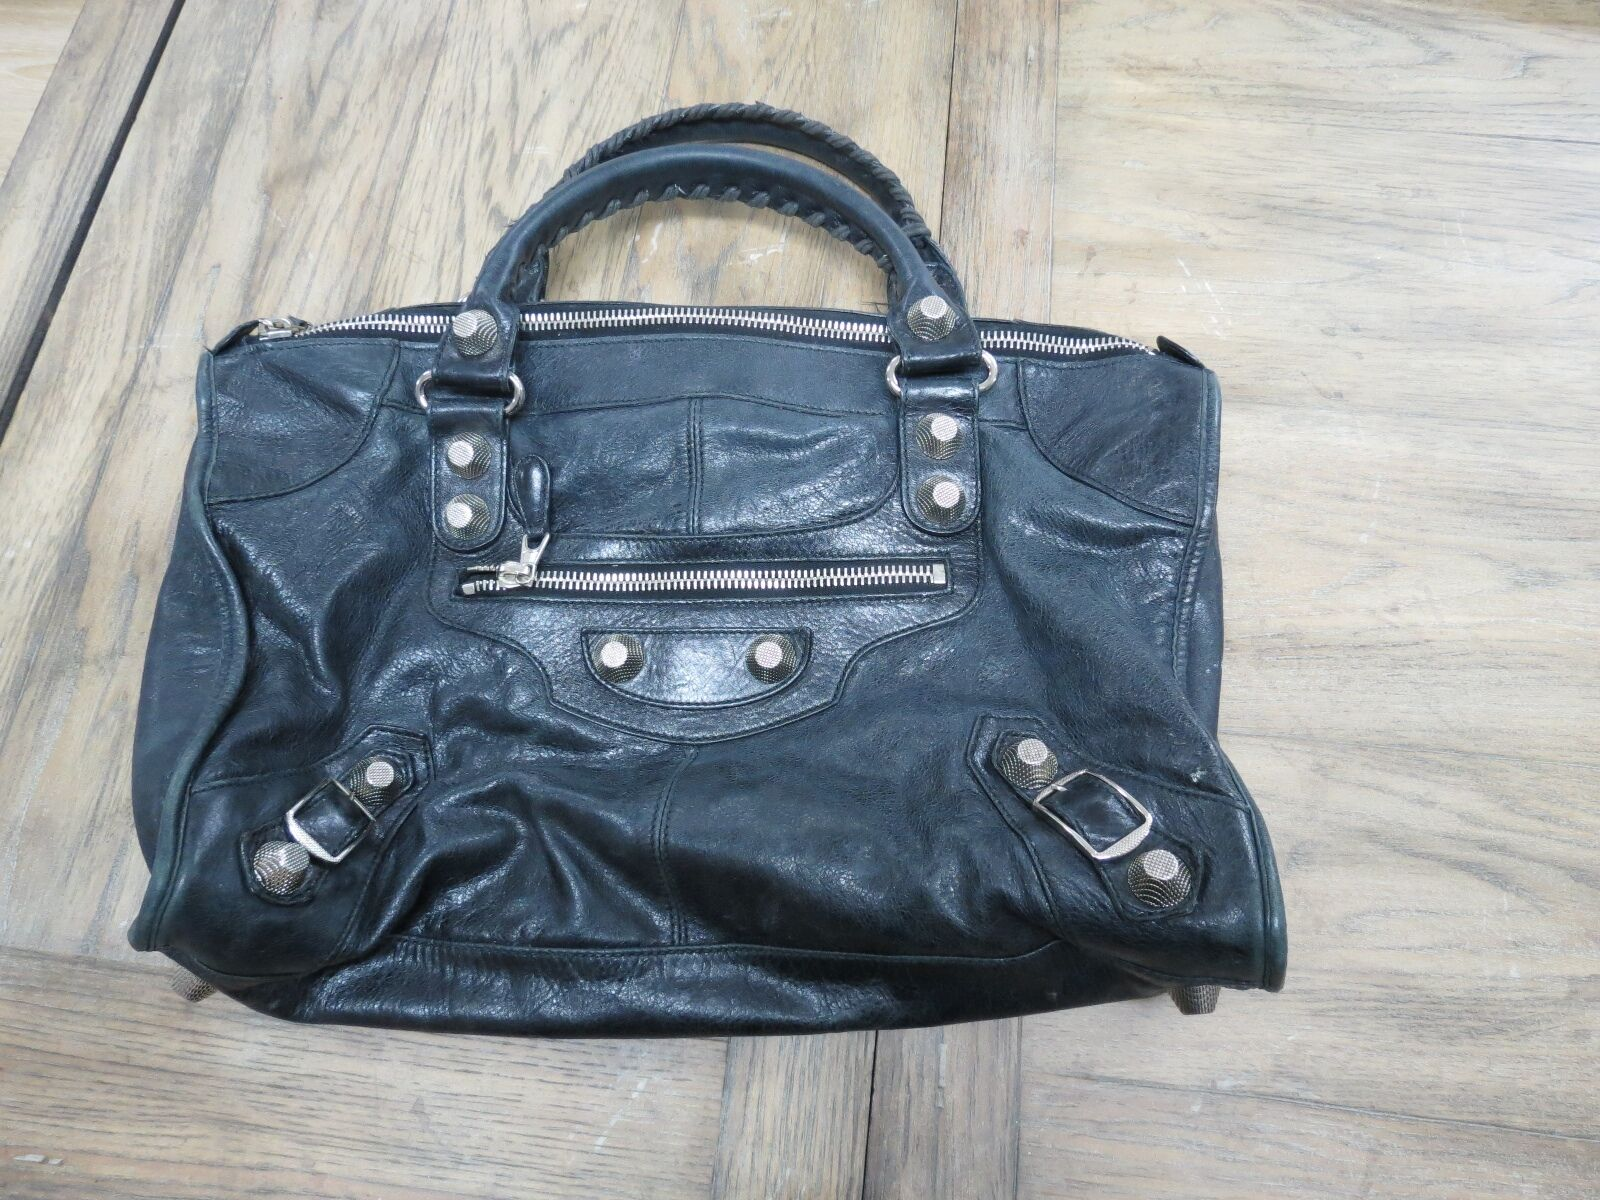 Authentic BALENCIAGA work handbag black with giant silver hardware